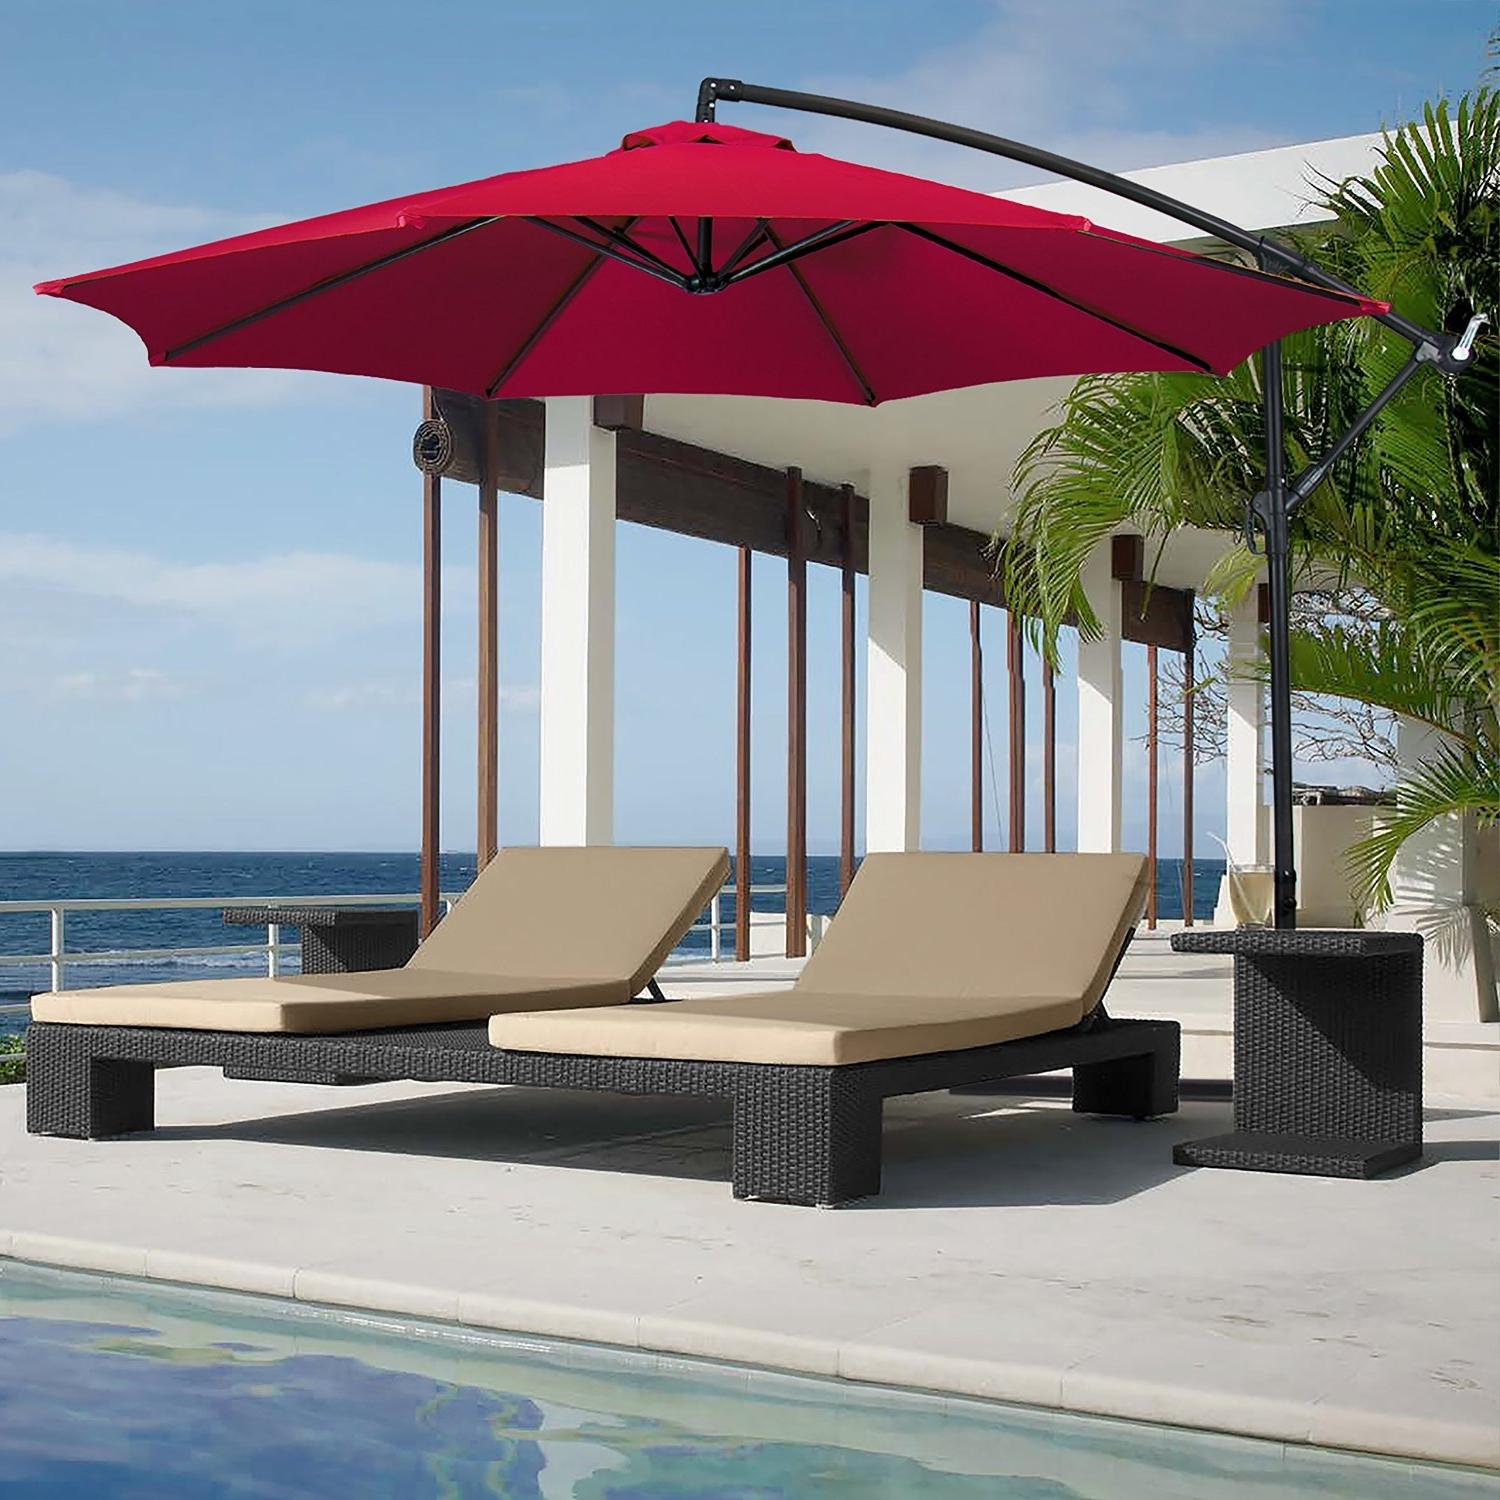 Patio Umbrella Replacement Canopy 8 Ribs Luxury Patio Umbrella Regarding Fashionable High End Patio Umbrellas (View 16 of 20)